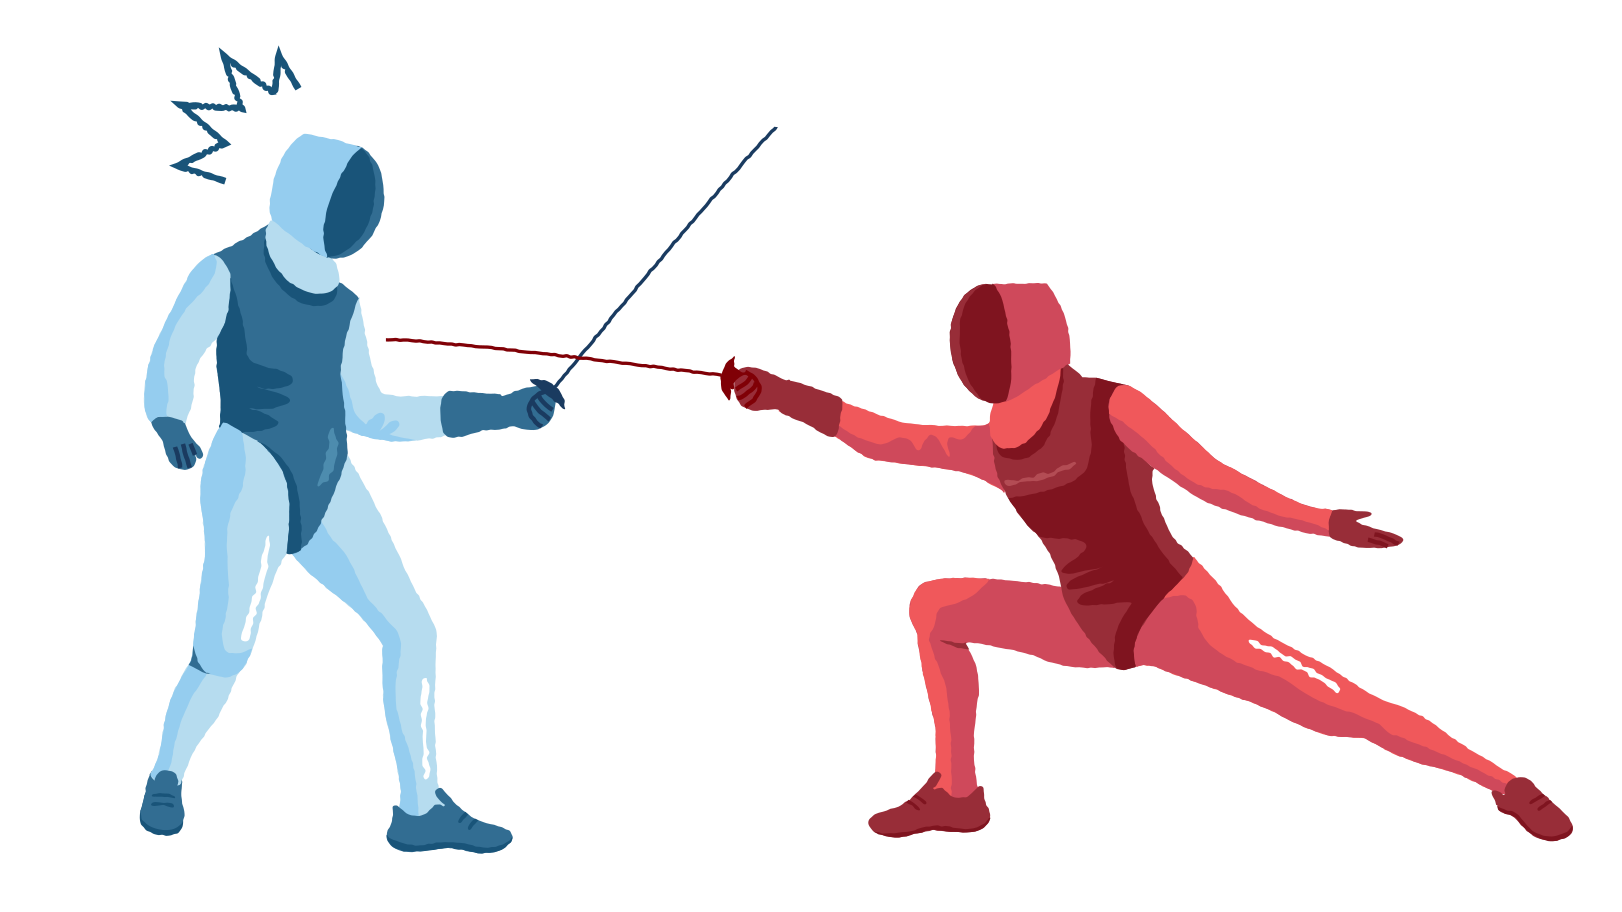 Fencing competition Clipart illustration in PNG, SVG